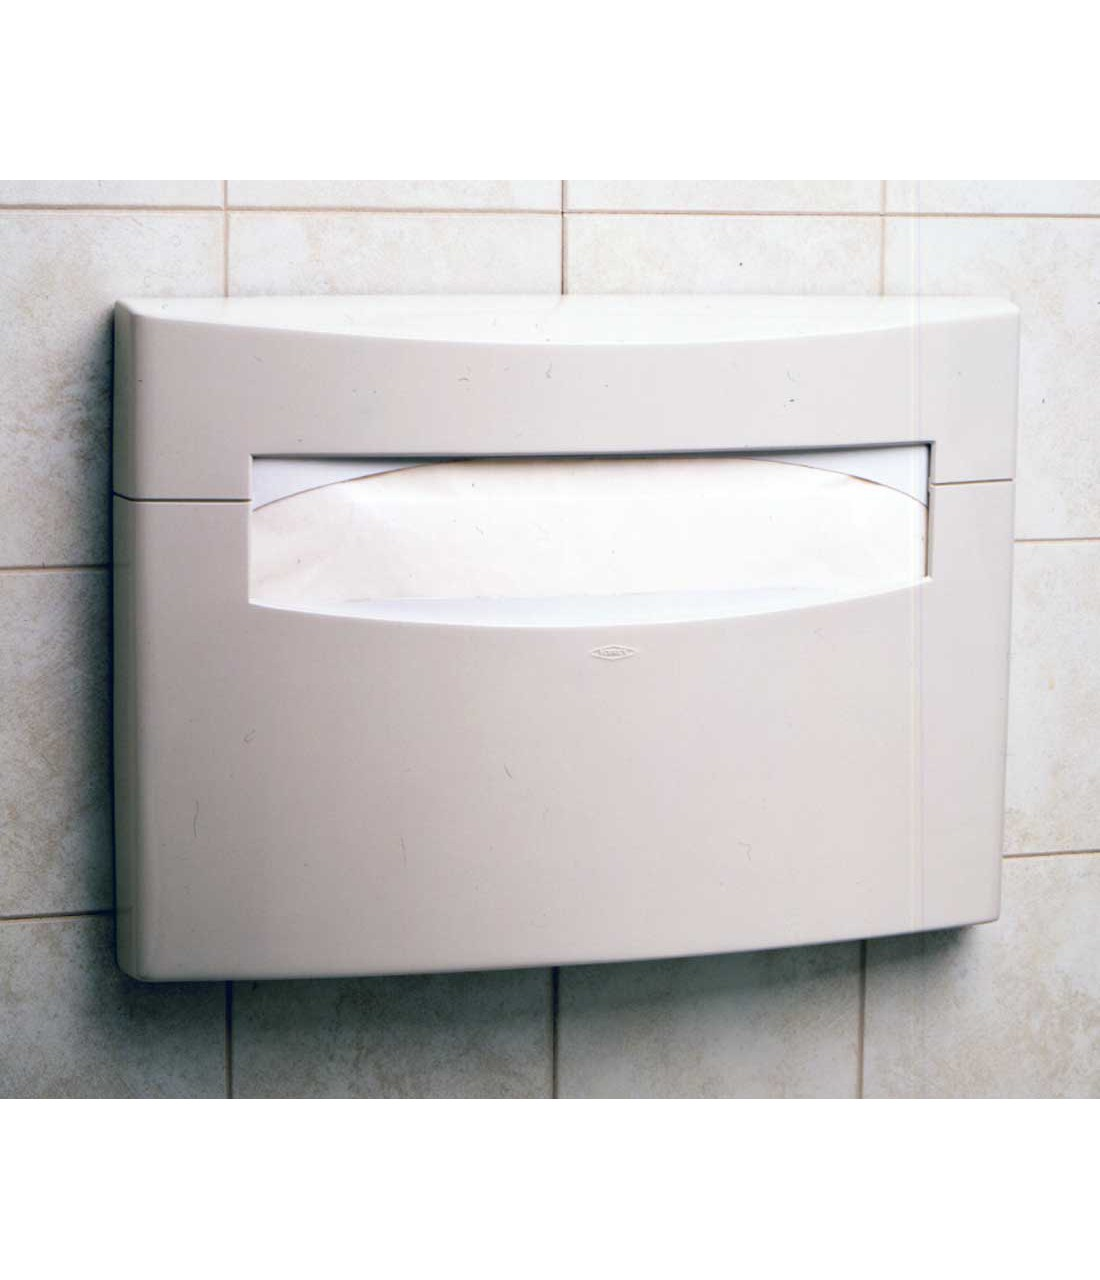 Magnificent Bobrick B 5221 Matrixseries Surface Mounted Seat Cover Dispenser Ncnpc Chair Design For Home Ncnpcorg